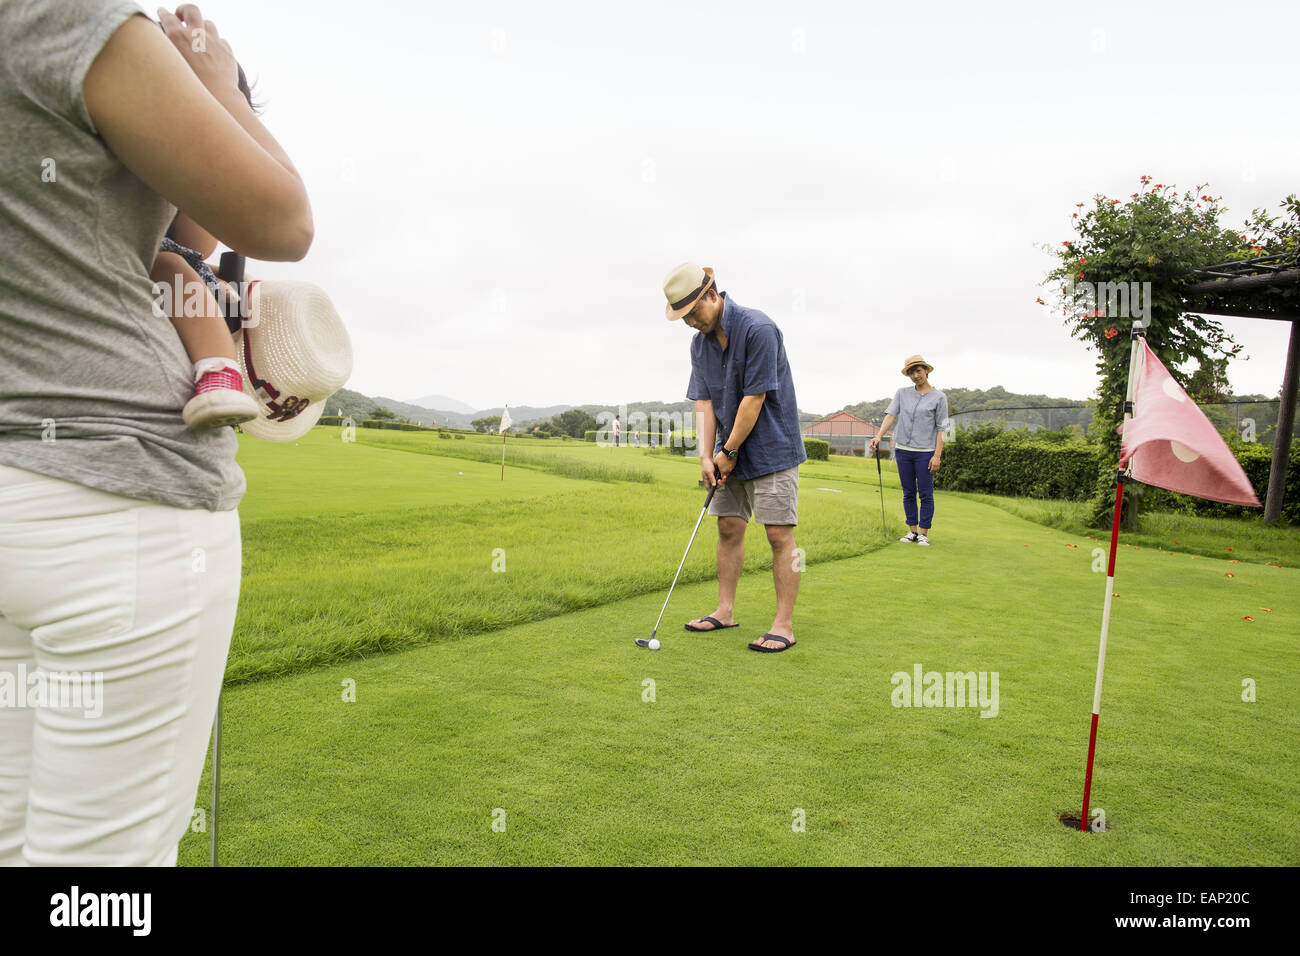 Family on a golf course. - Stock Image